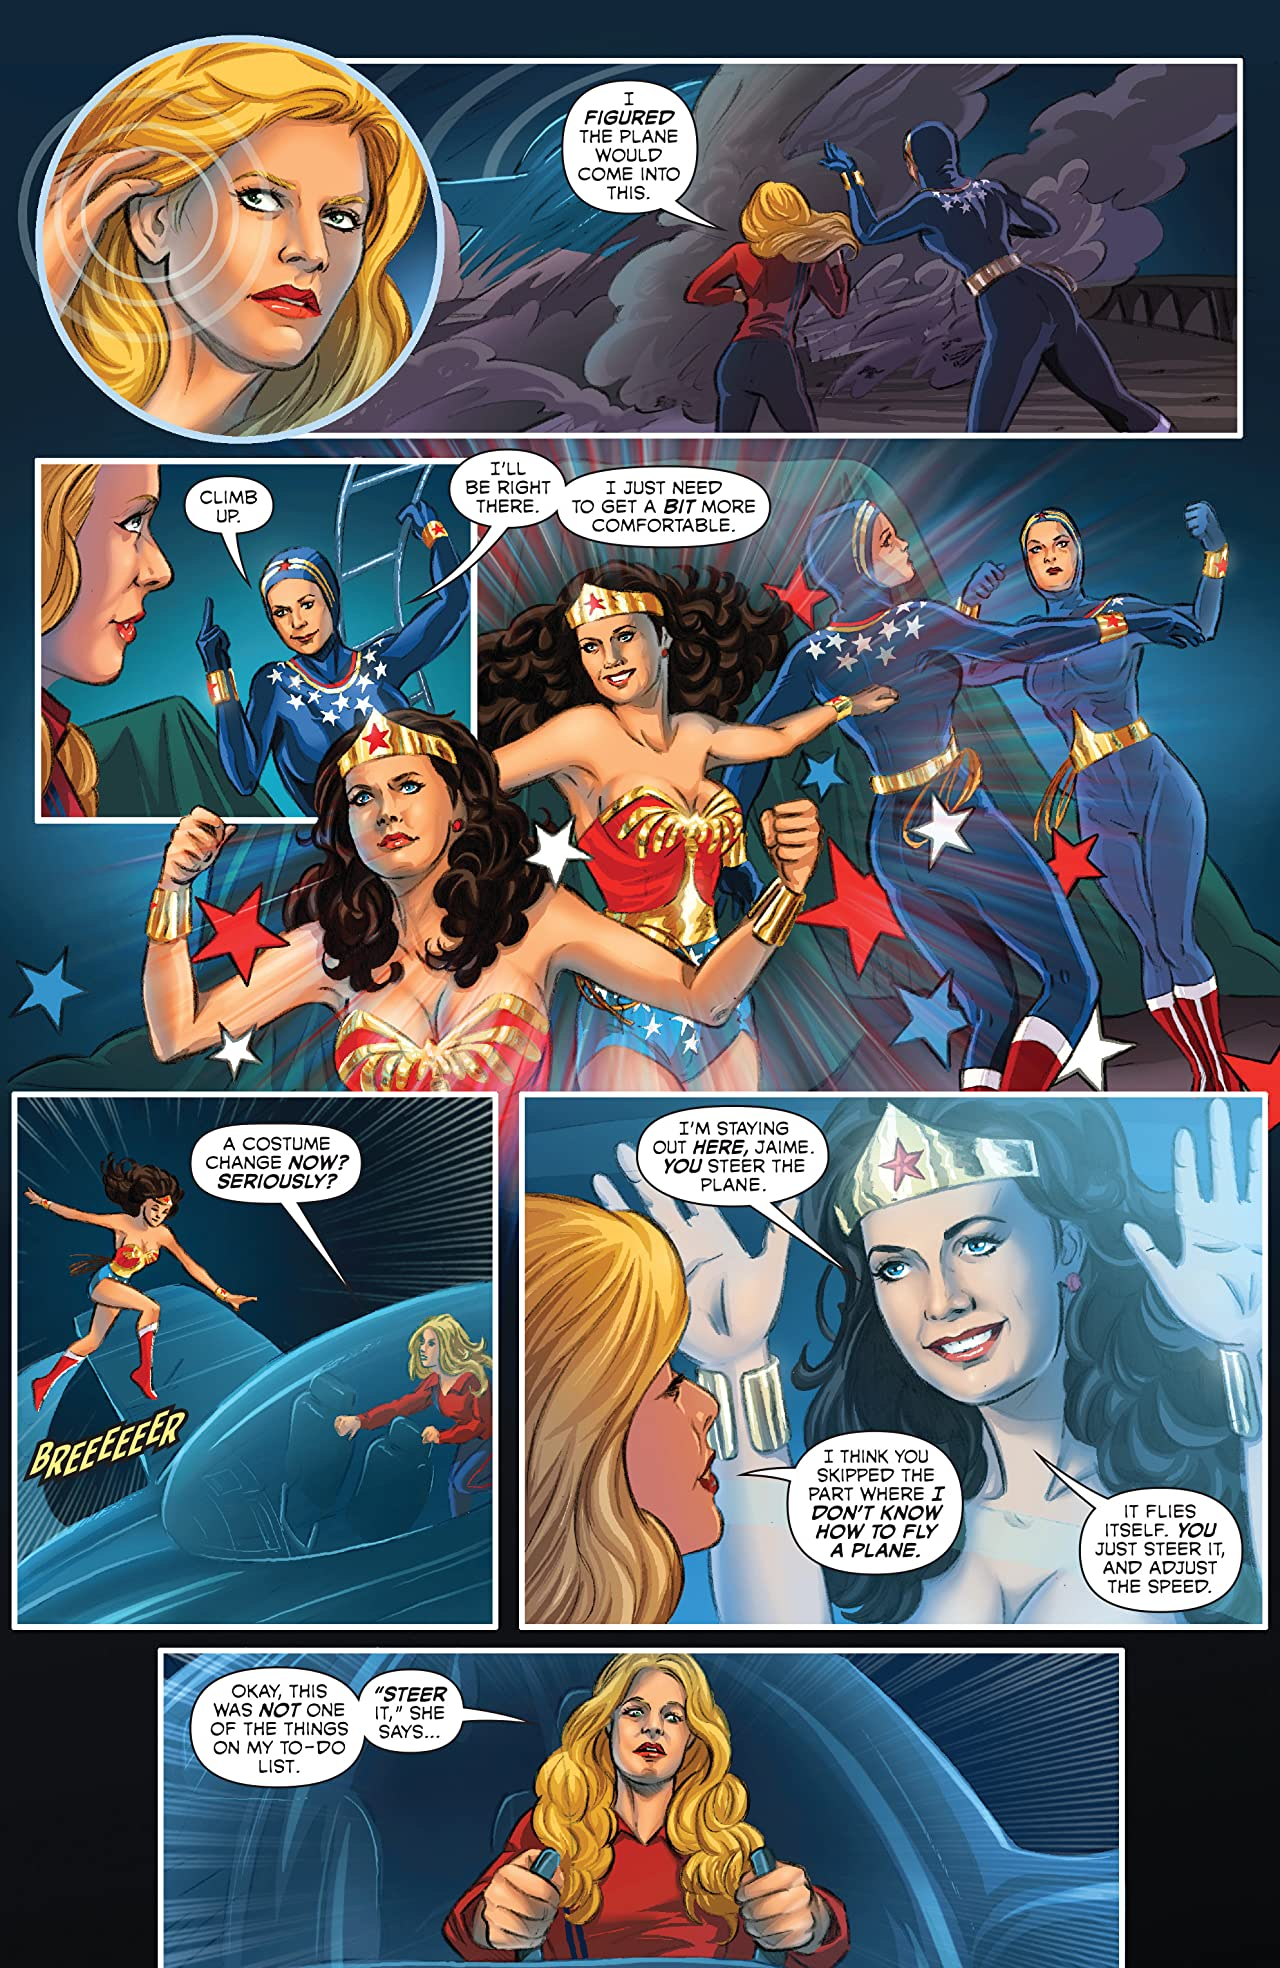 Wonder Woman '77 Meets The Bionic Woman #3